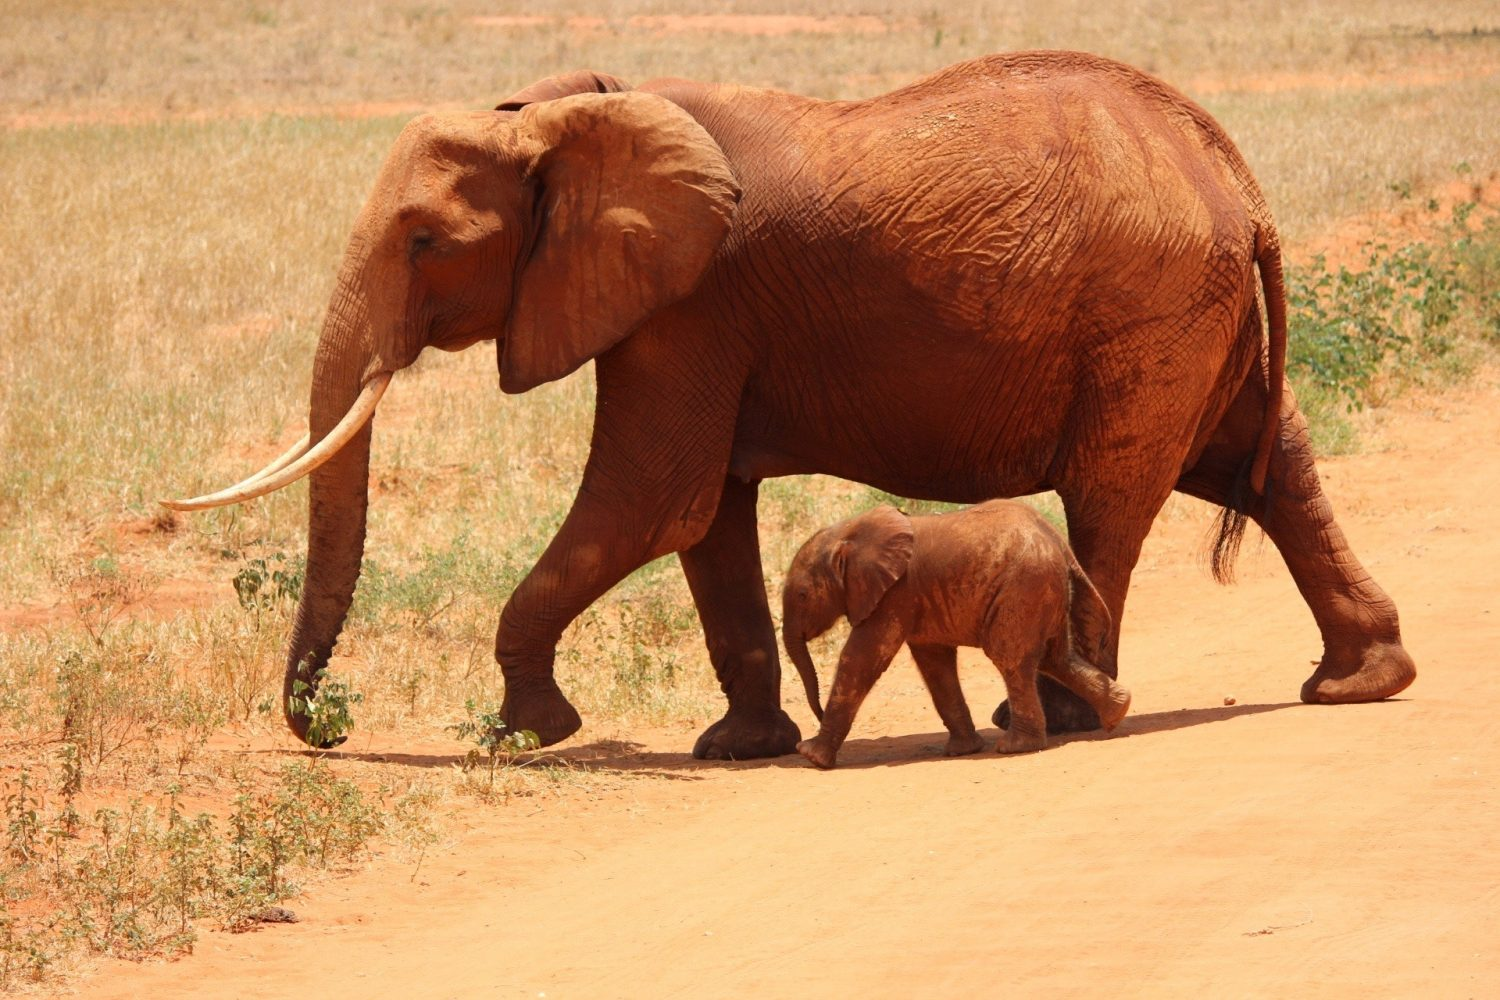 Mom and baby elephant walking together